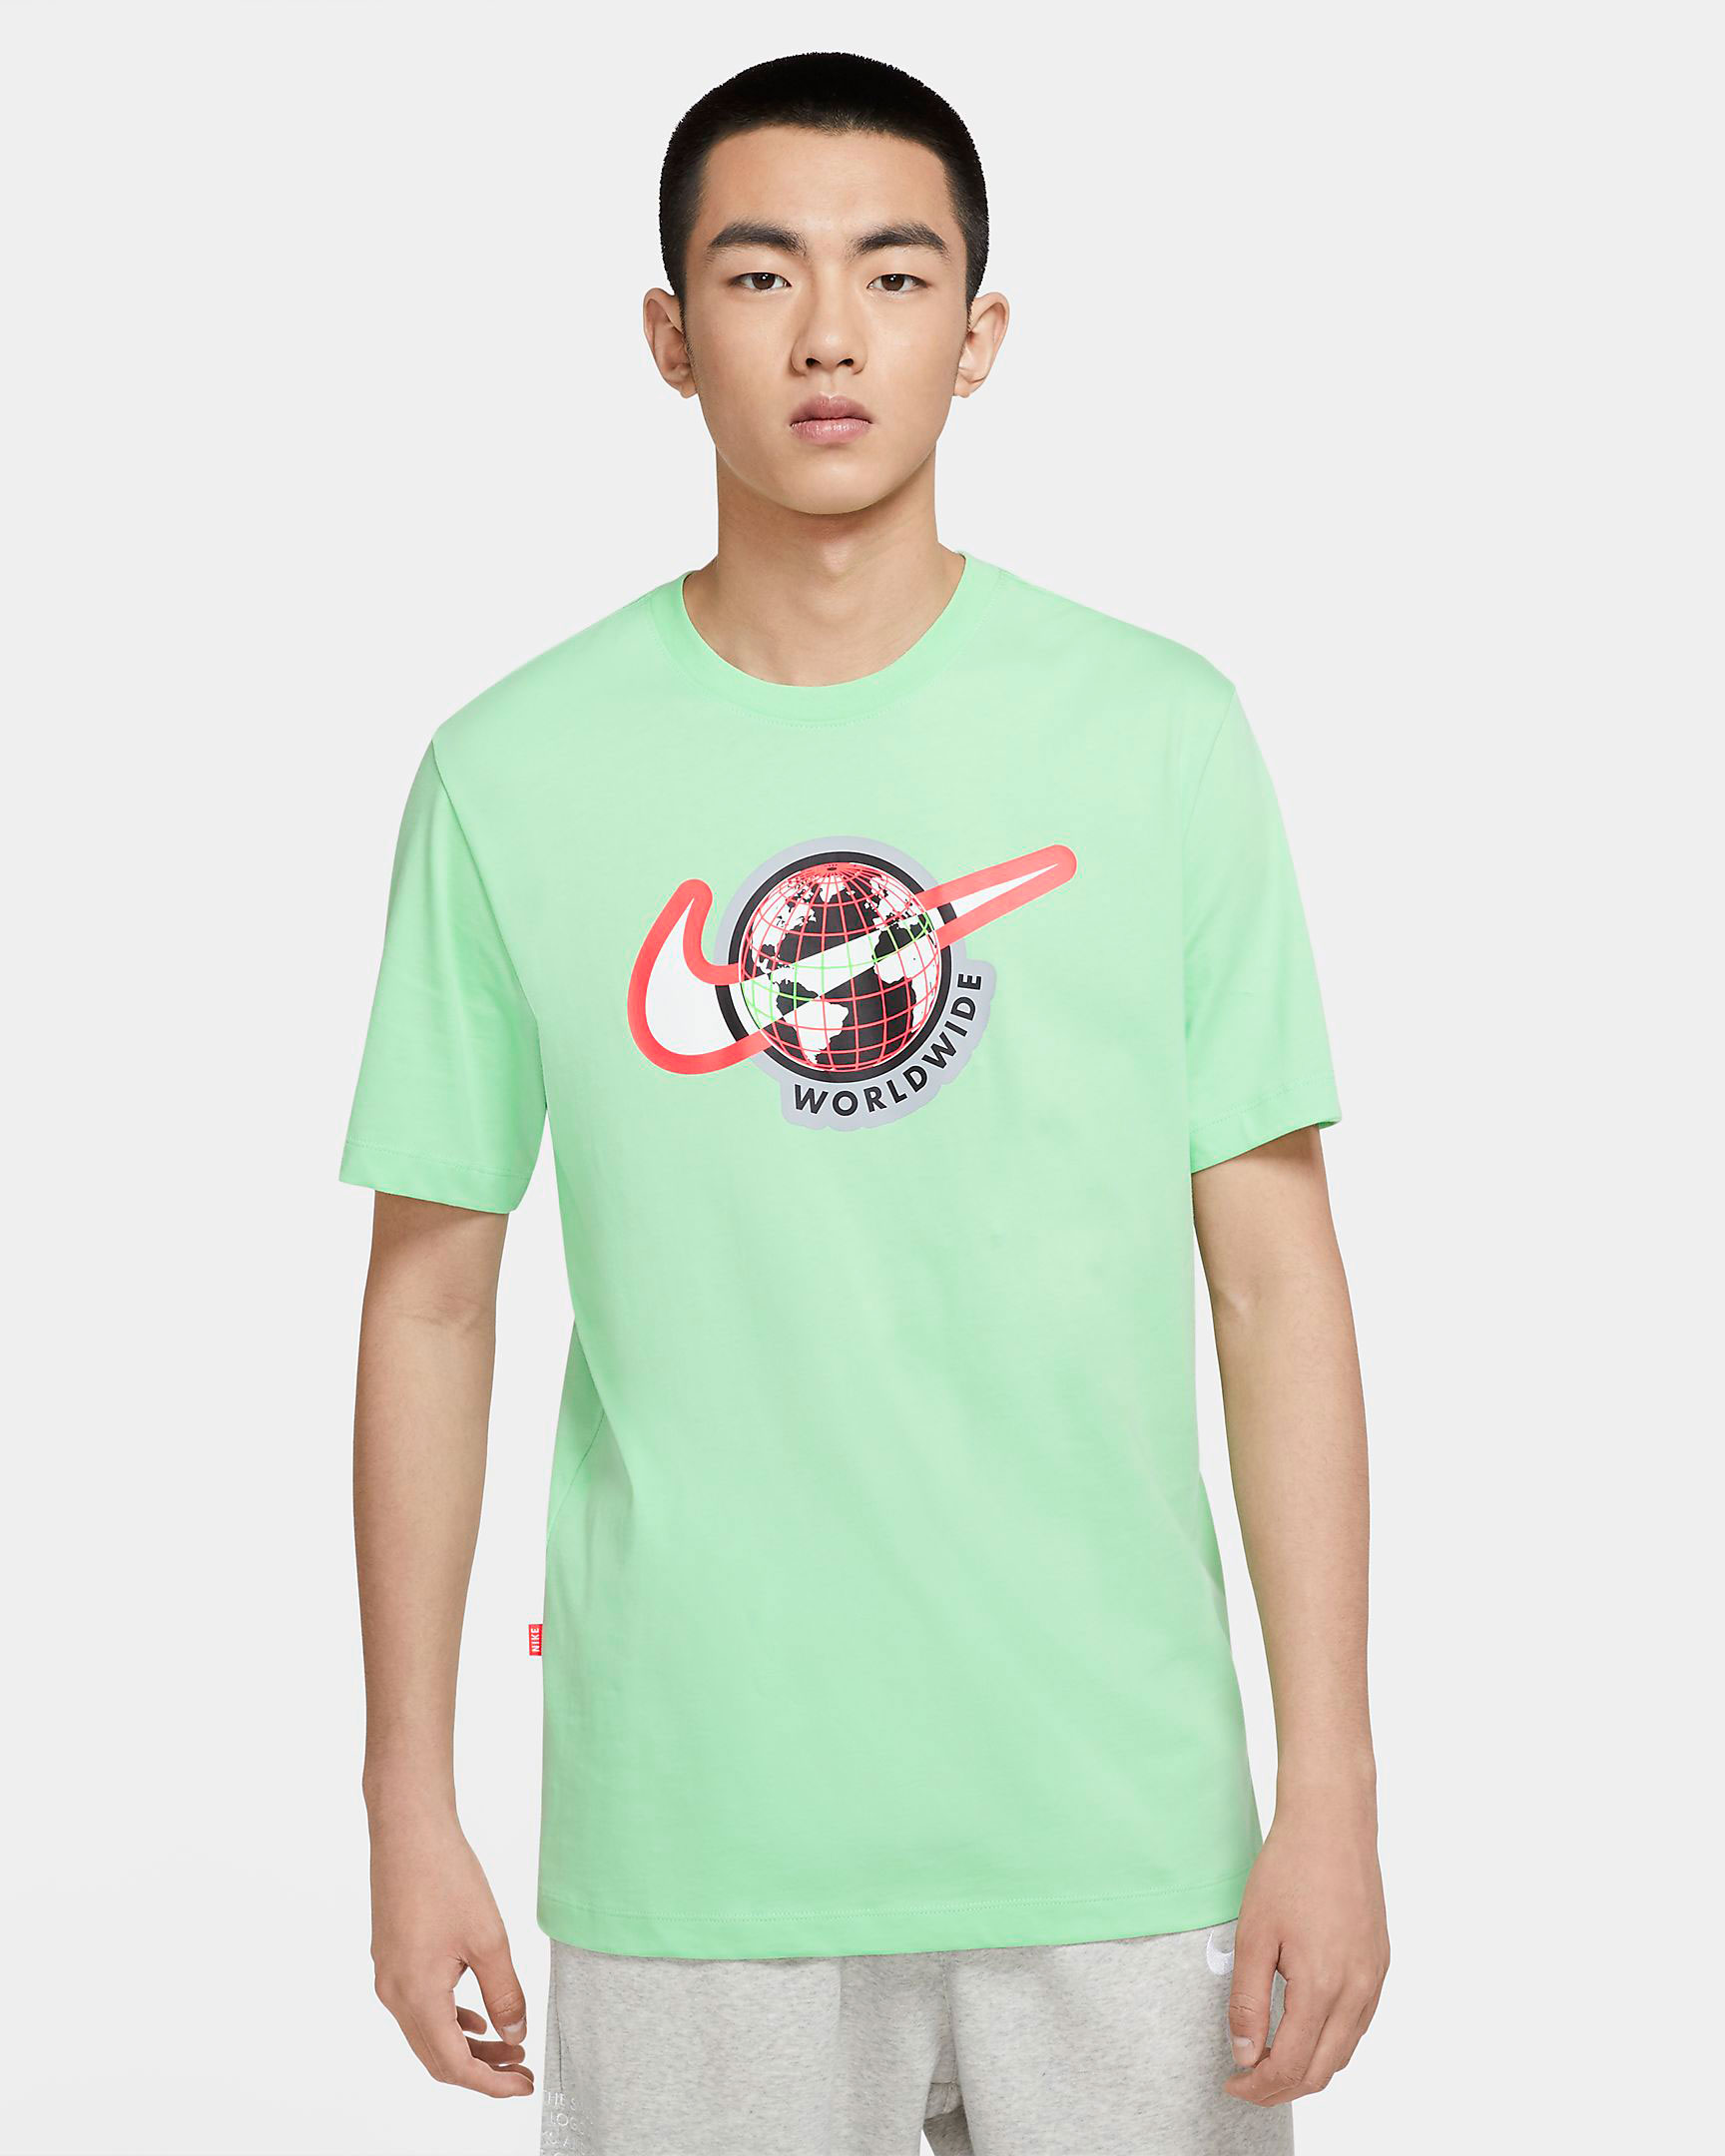 nike-worldwide-shirt-green